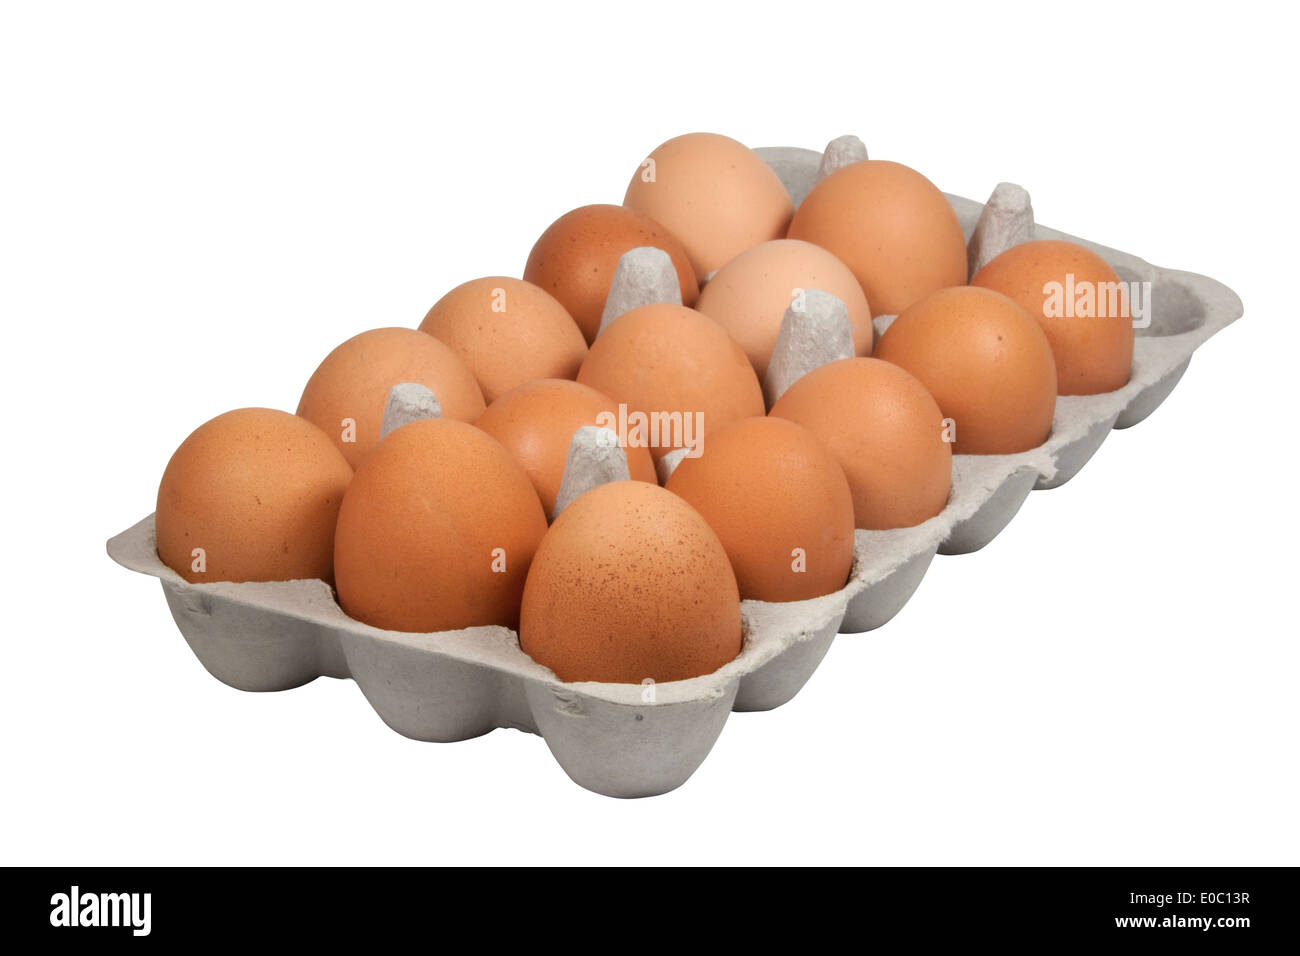 cardboard egg tray filled with freshly laid